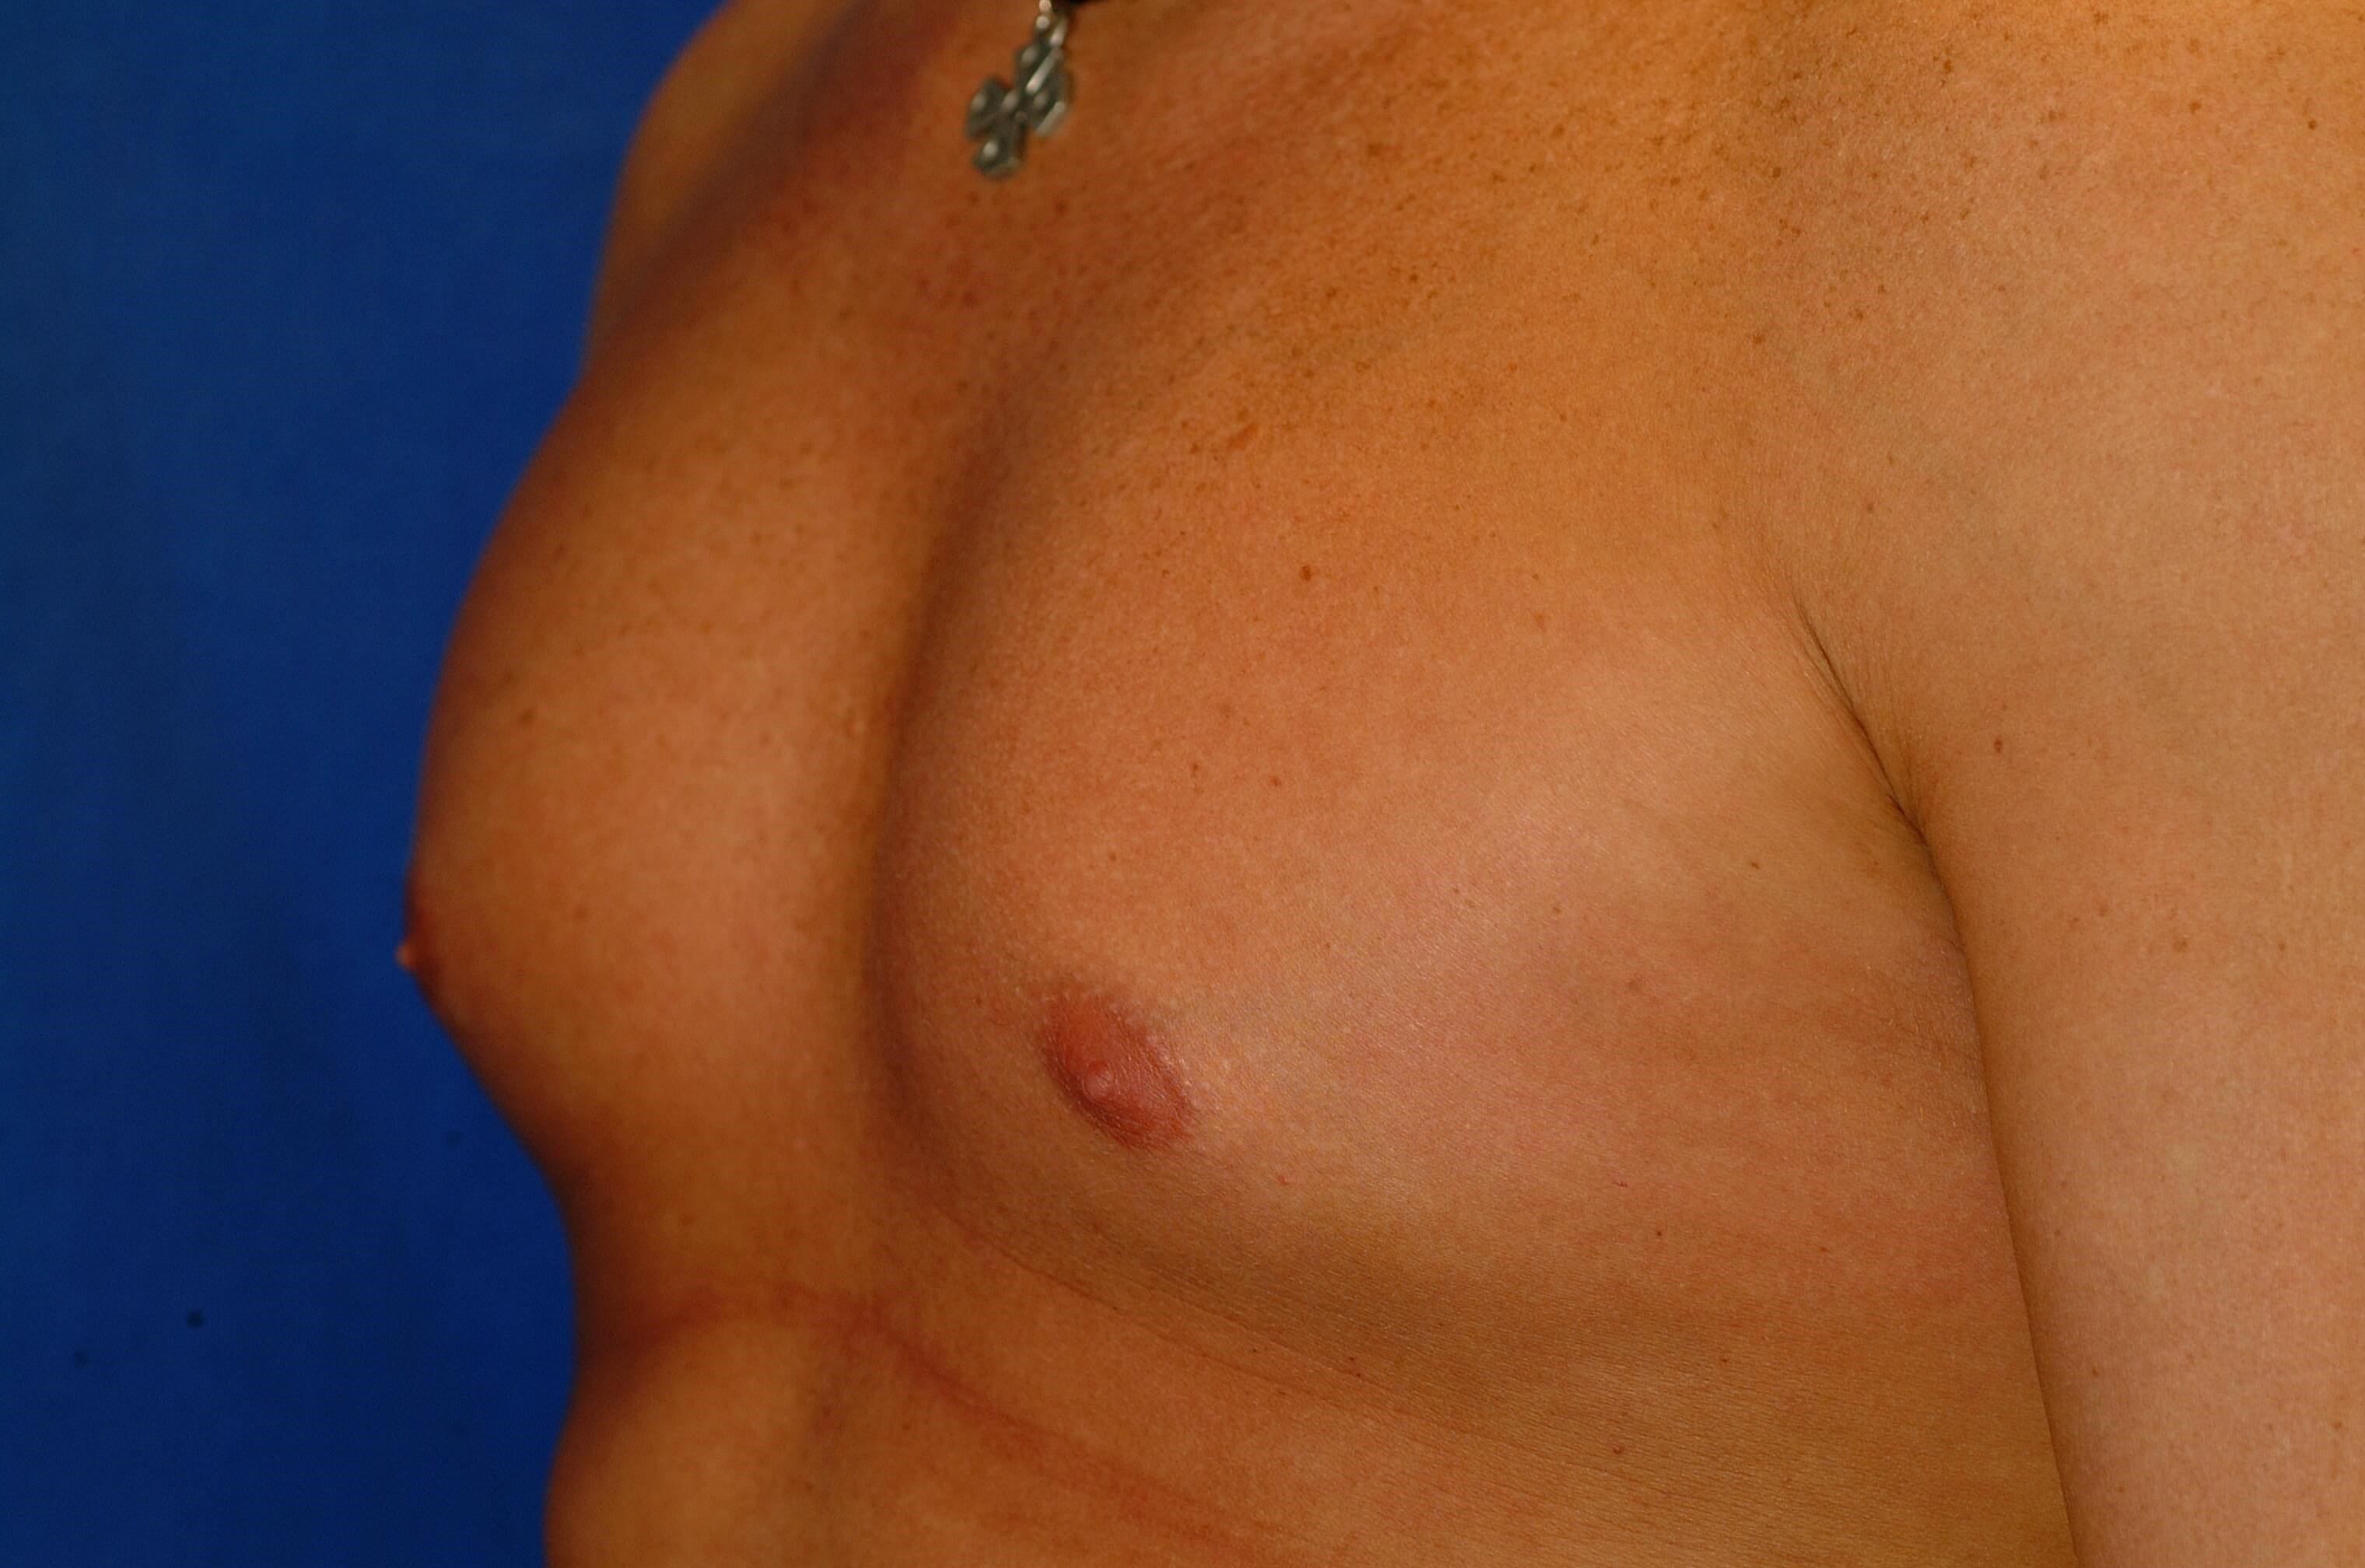 Newport Beach Pectoral Implant Oblique View After